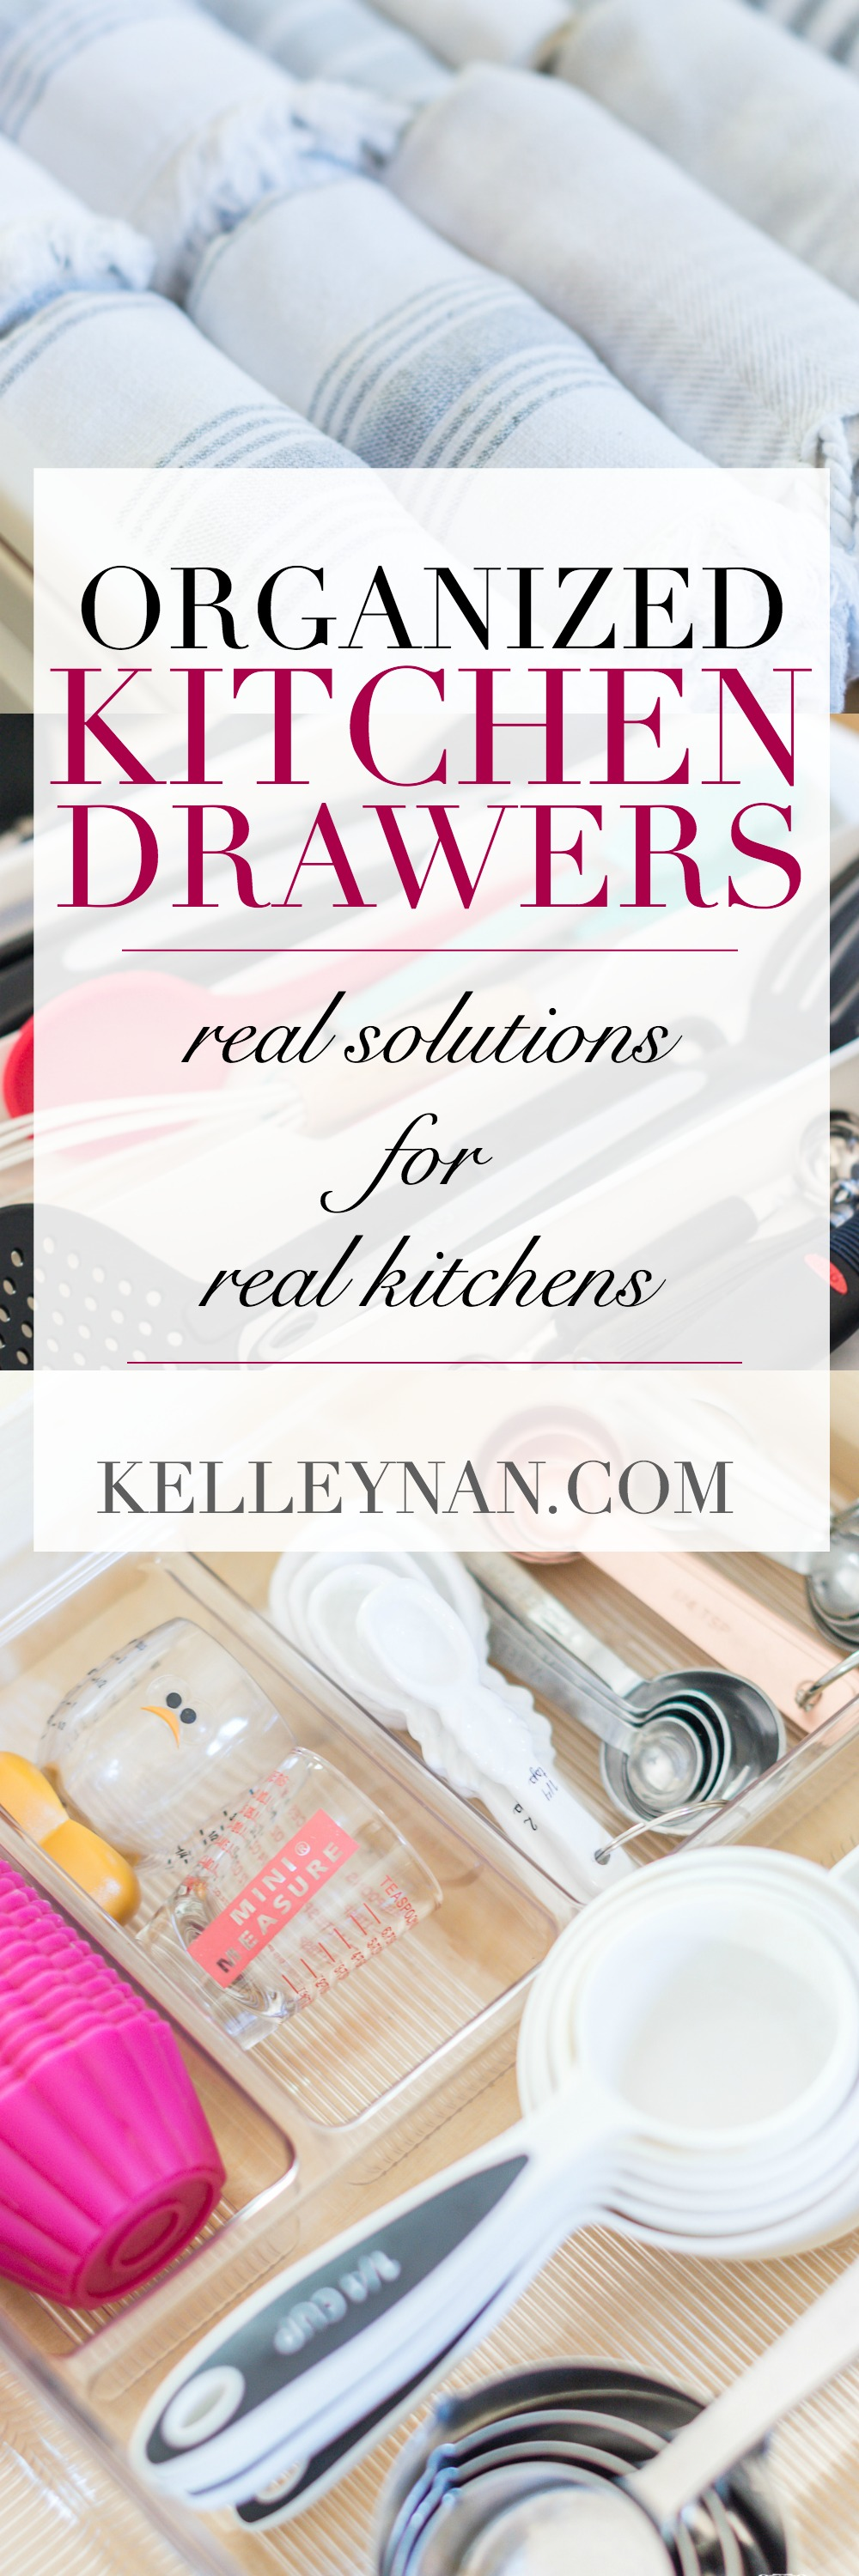 KITCHEN ORGANIZATION IDEAS WITH FAVORITE AFFORDABLE DRAWER ORGANIZERS